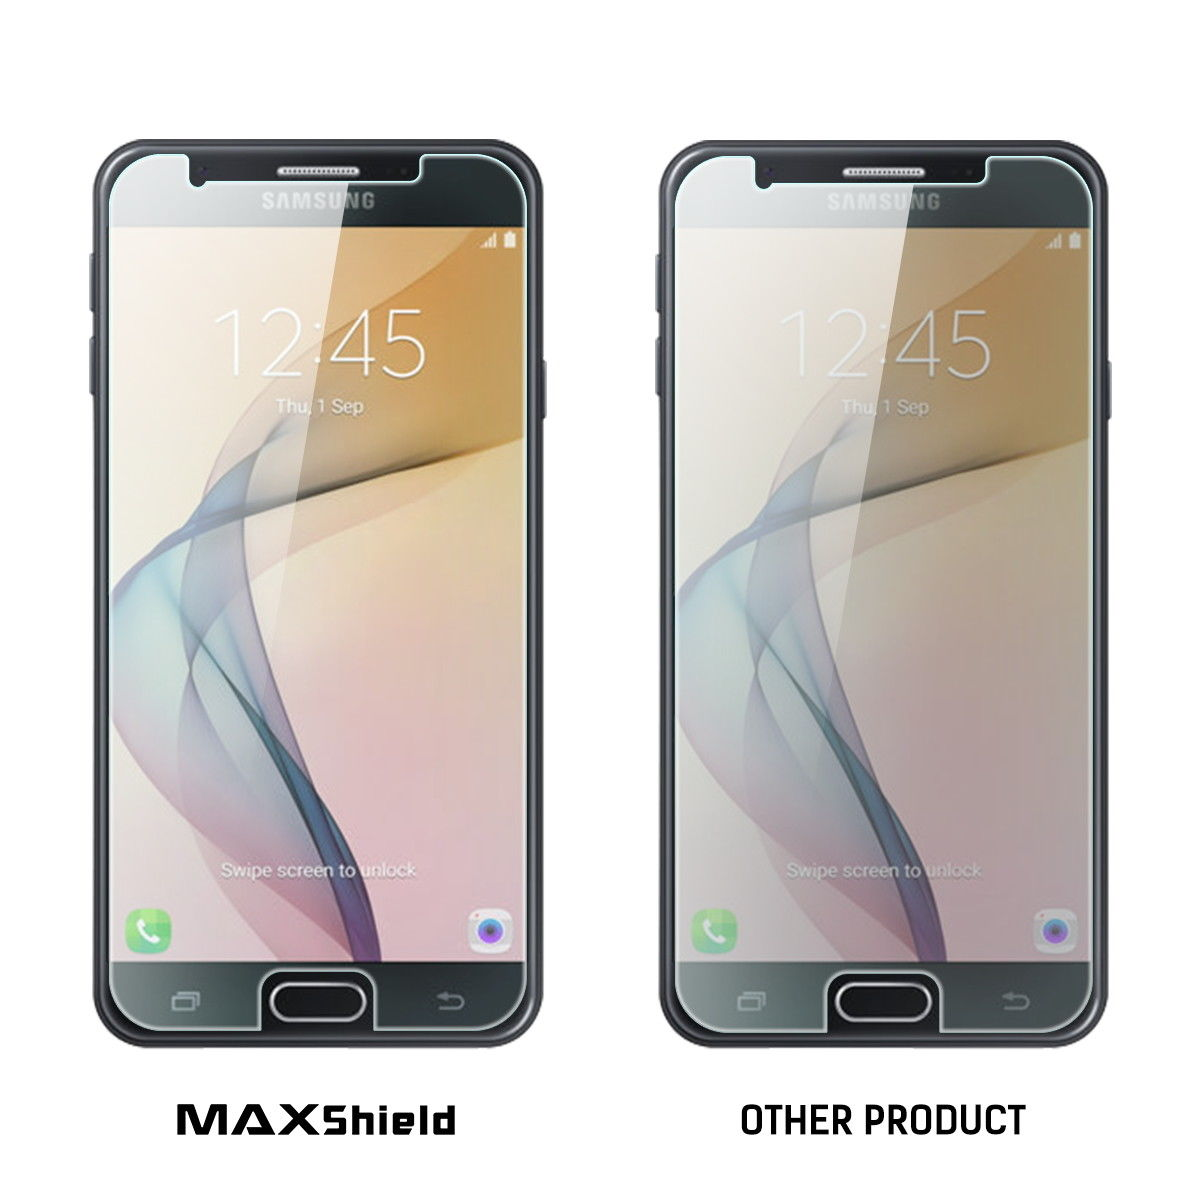 MAXSHIELD Tempered Glass Screen Protector For Samsung Galaxy J5 Prime